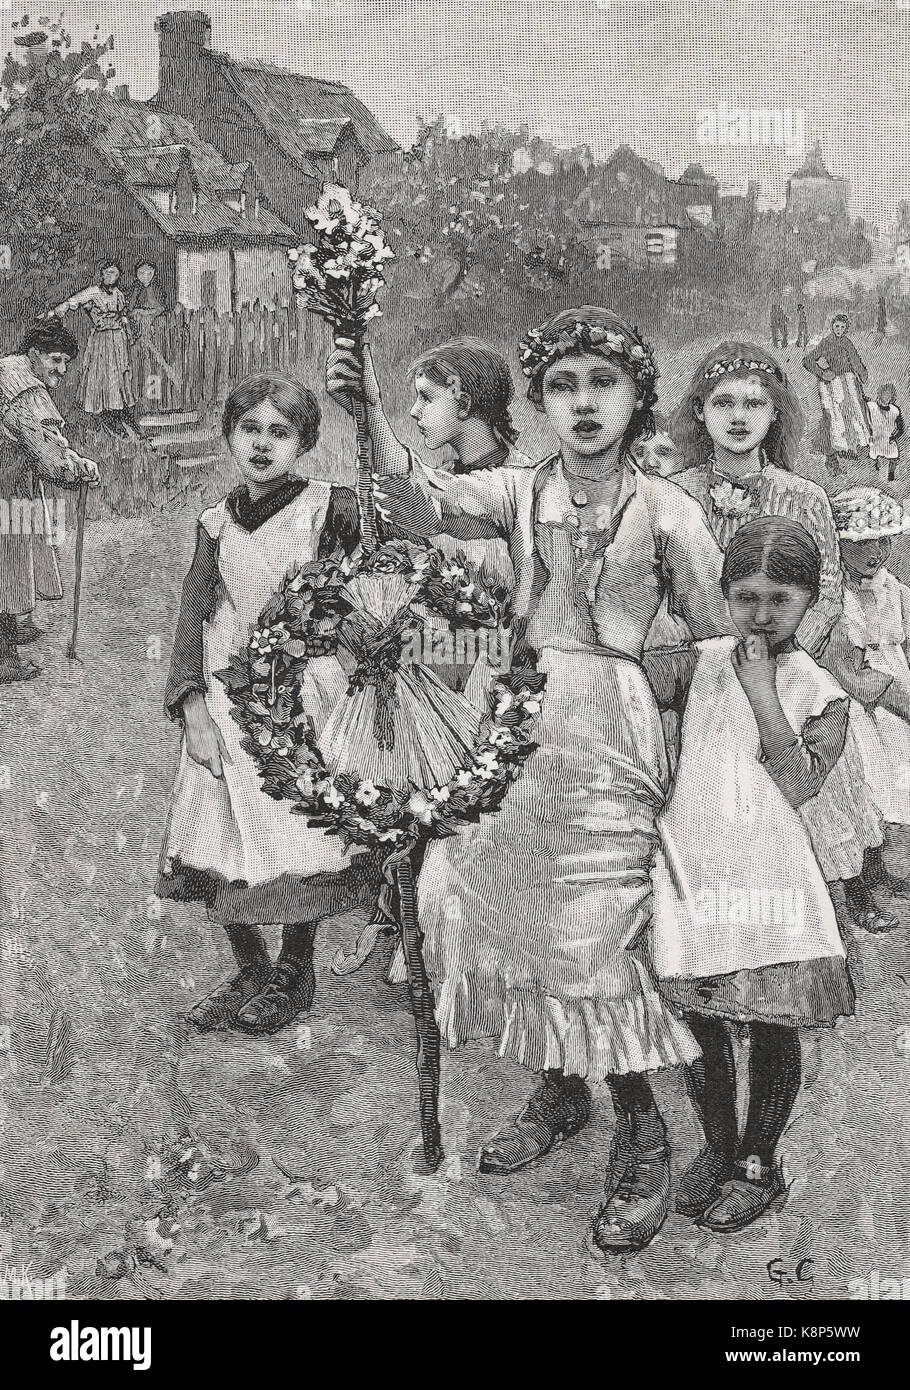 Young girls on a Victorian May day, 1886 - Stock Image